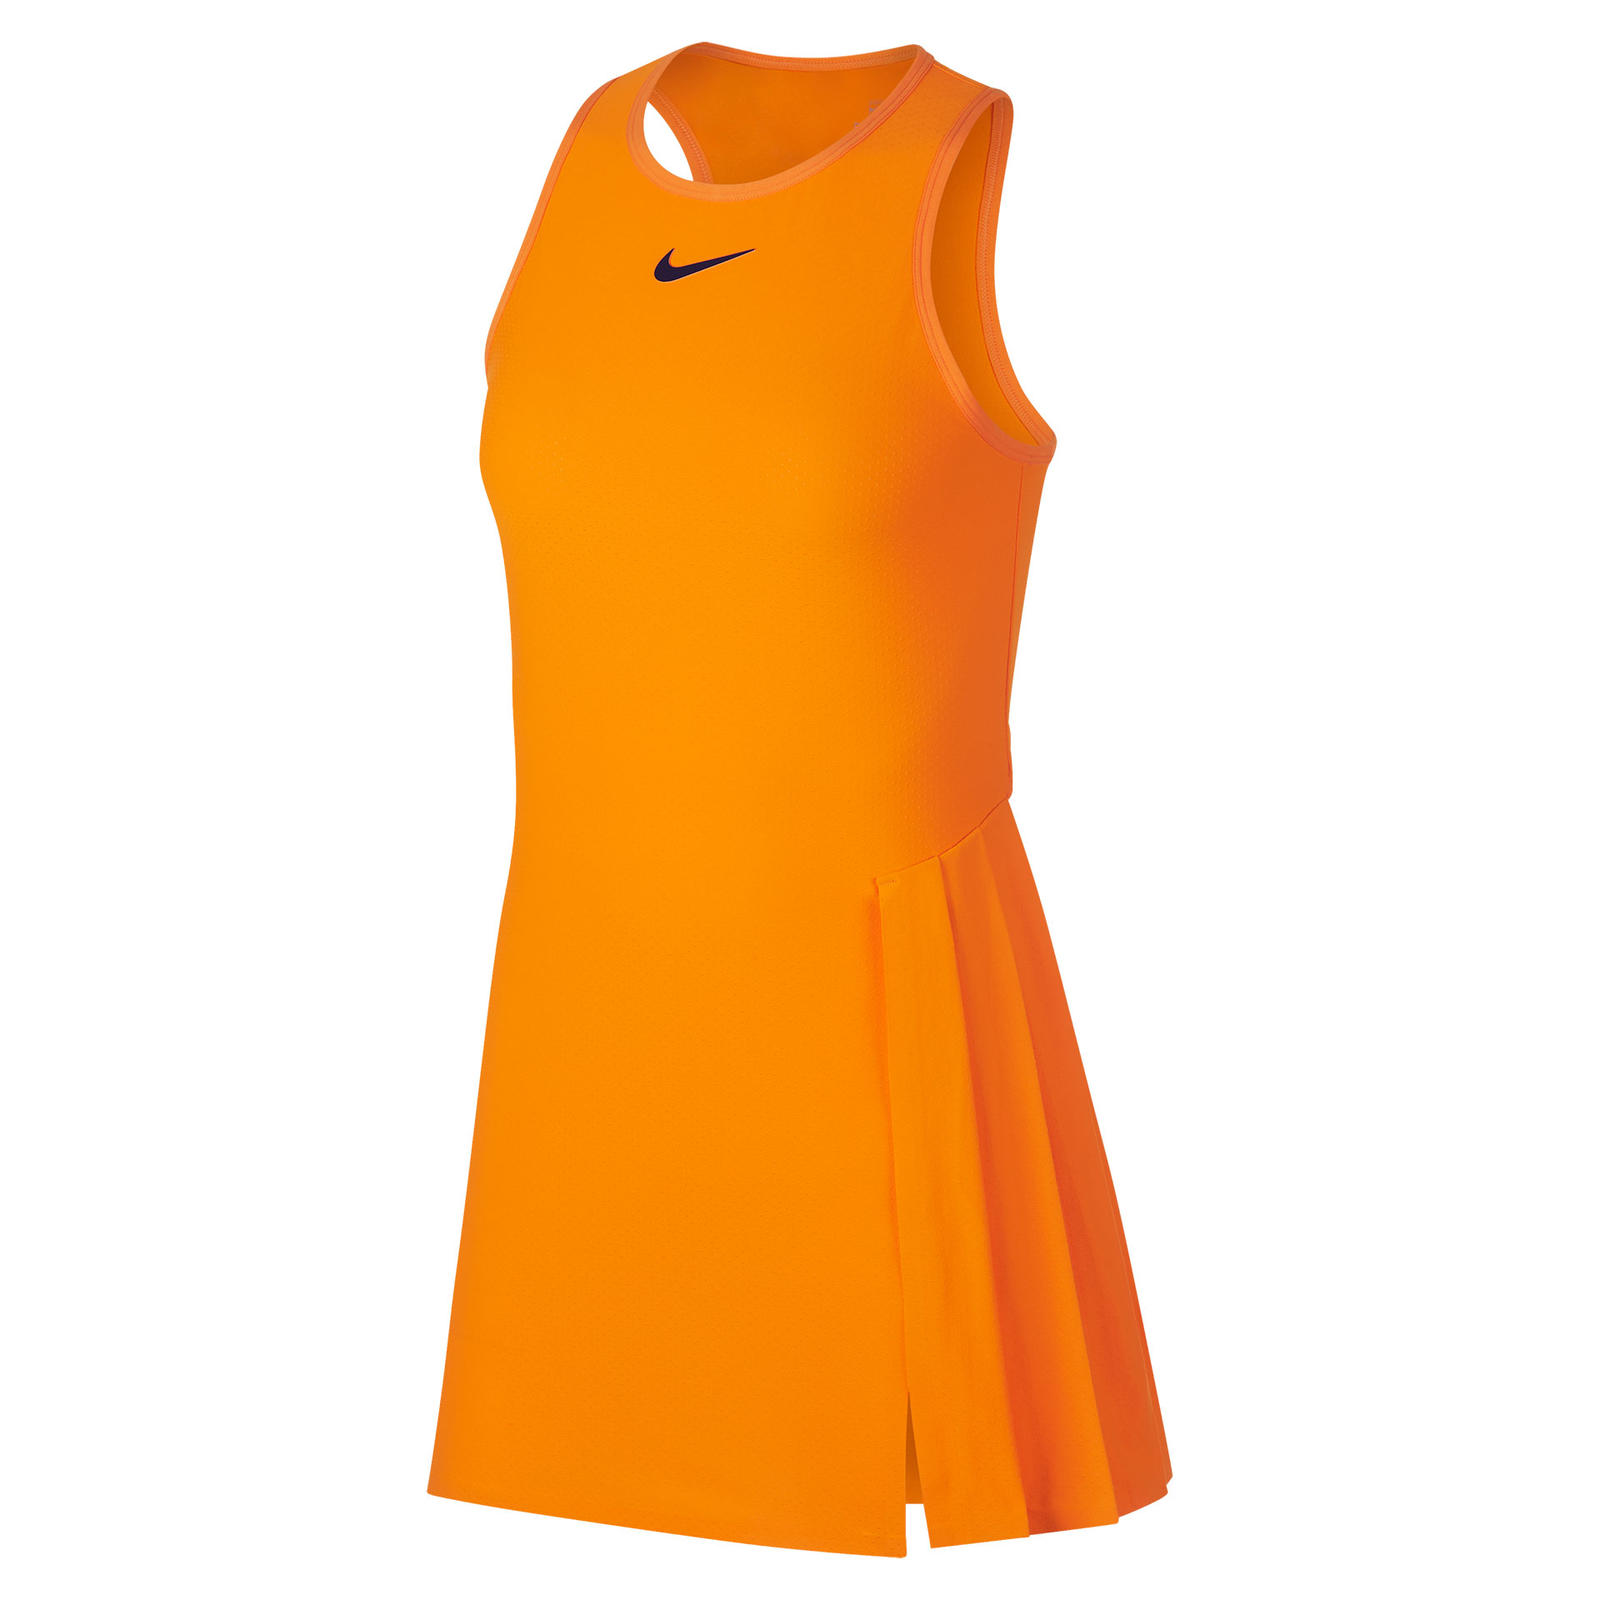 Nikecourtzonalcoolingslamdress 2018 re square 1600